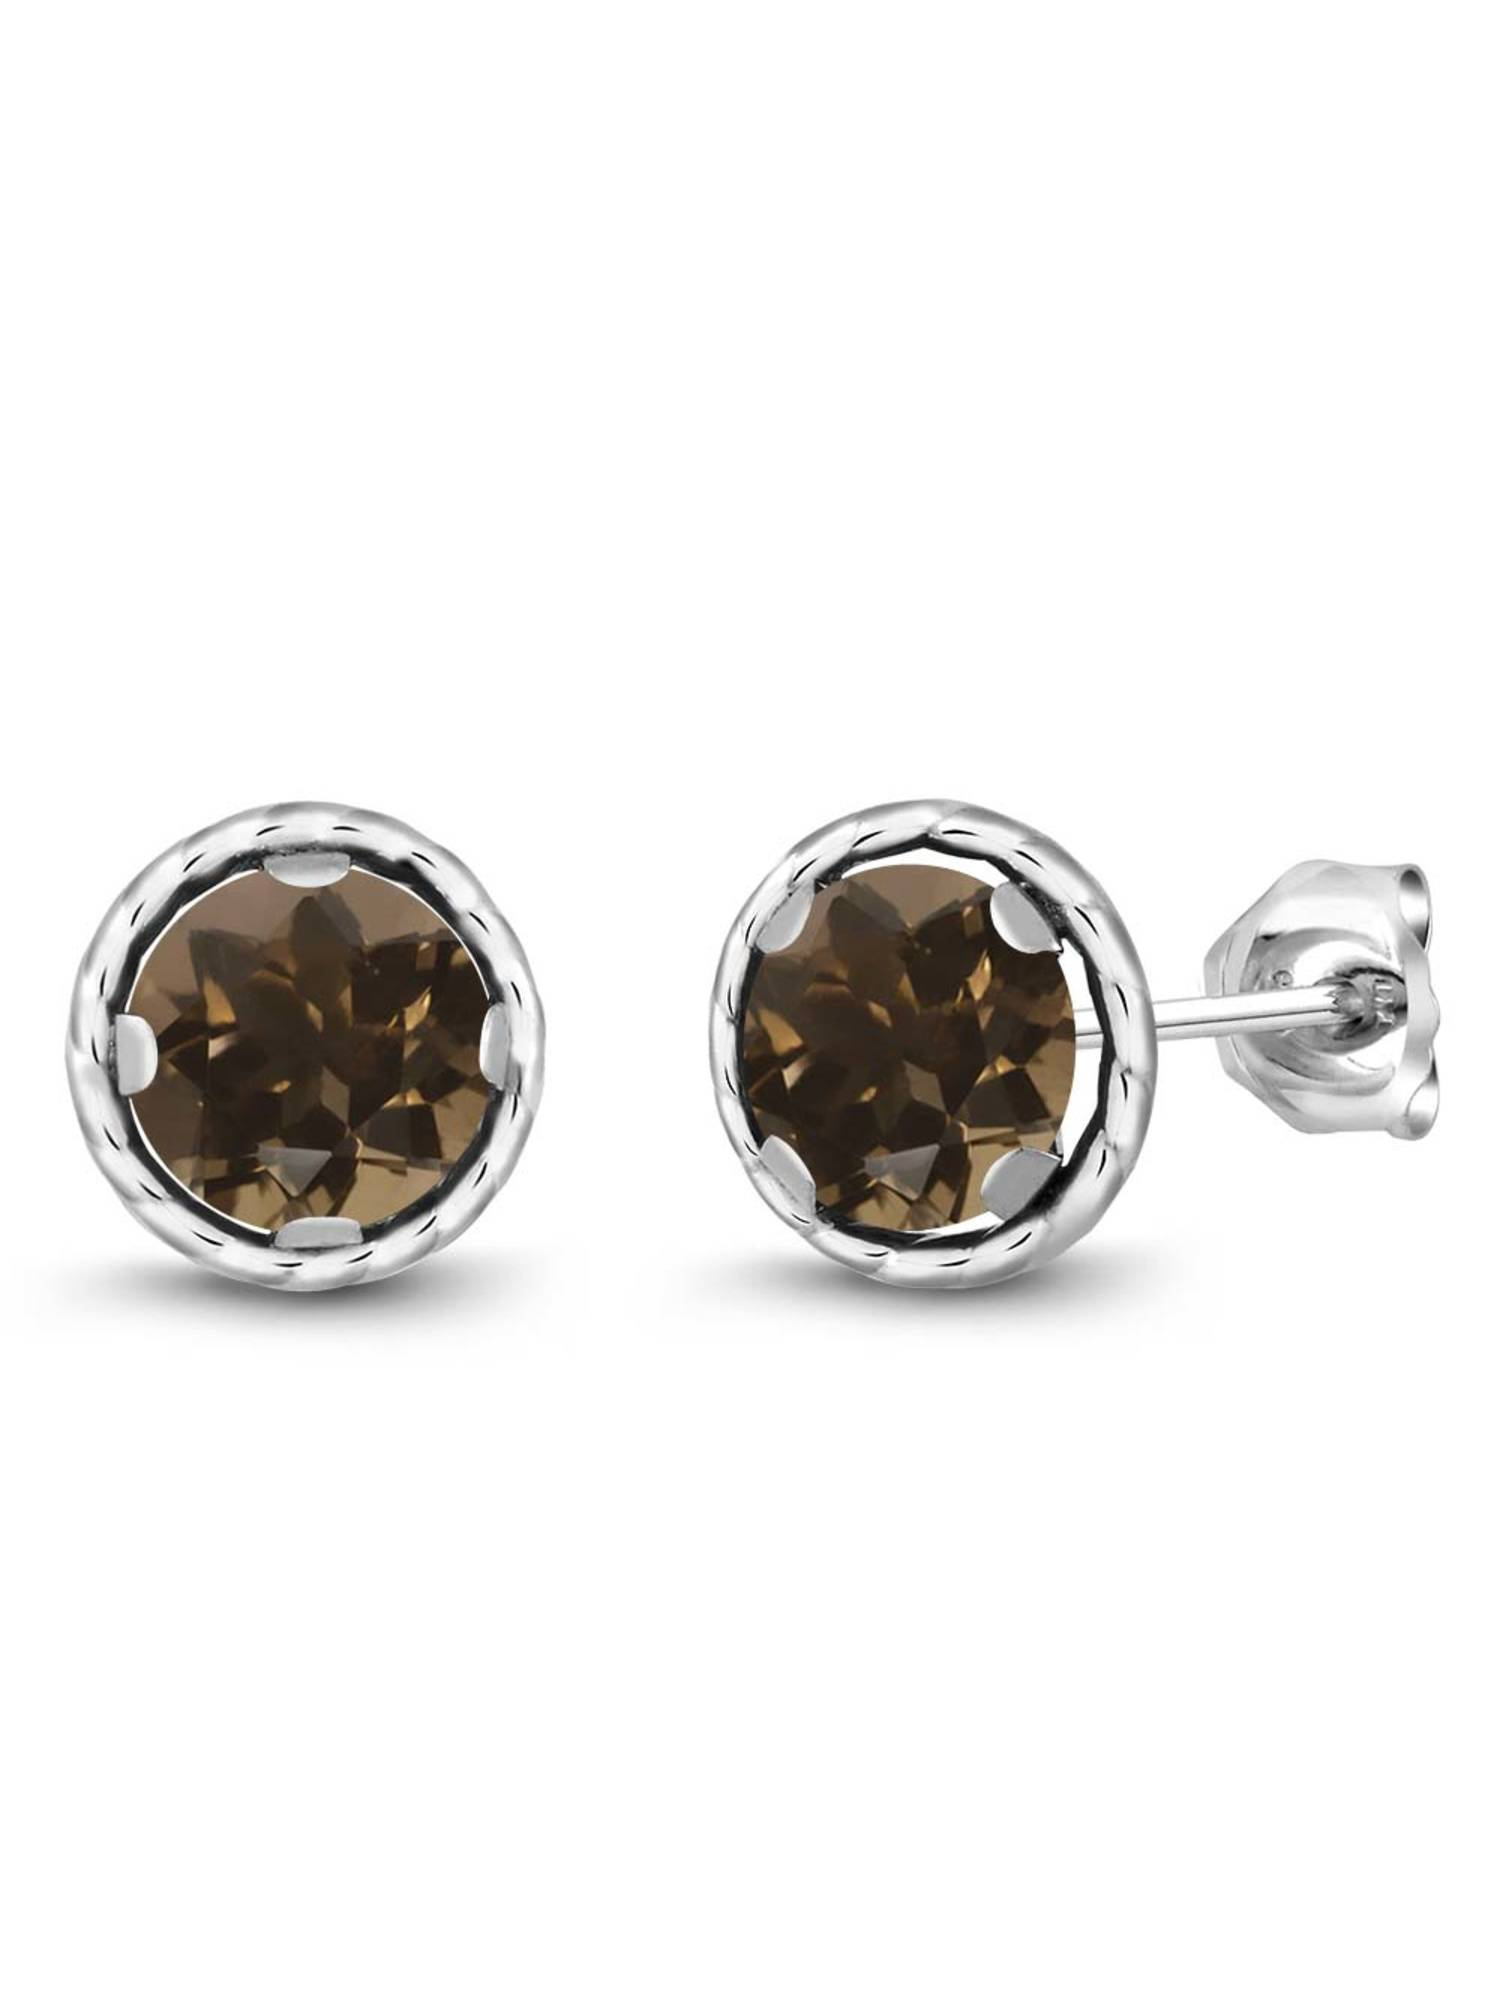 1.60 Ct Round 6mm Brown Smoky Quartz 925 Sterling Silver Stud Earrings